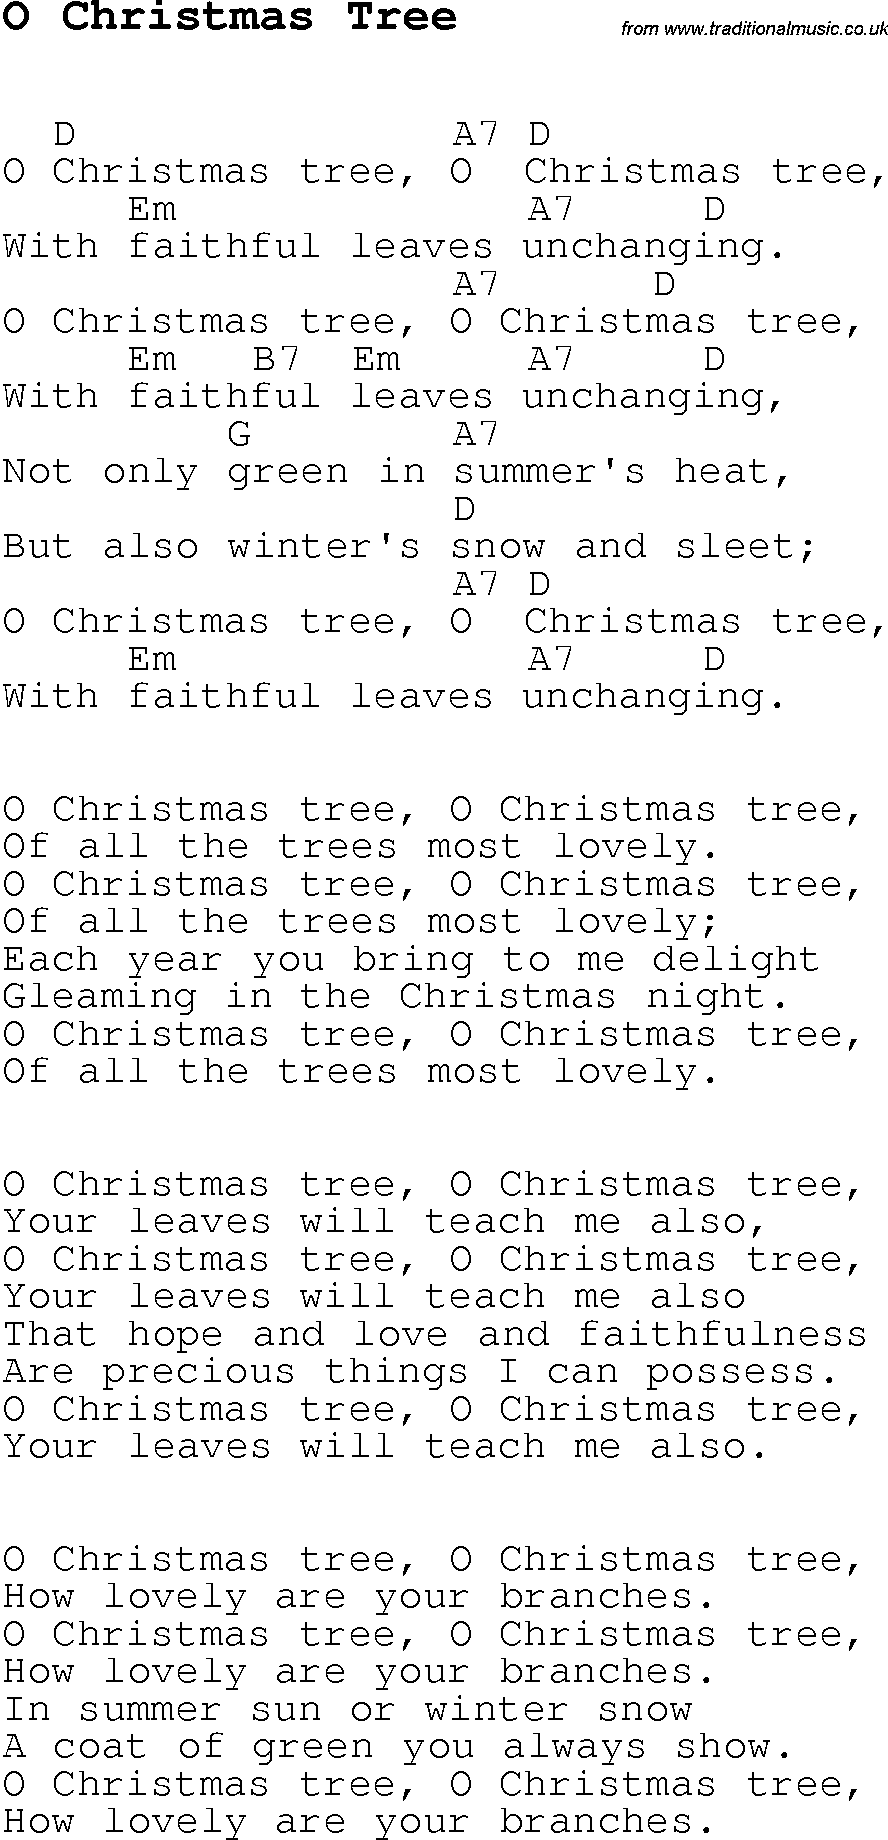 christmas songs and carols lyrics with chords for guitar banjo for o christmas tree - Oh Christmas Tree How Lovely Are Your Branches Lyrics